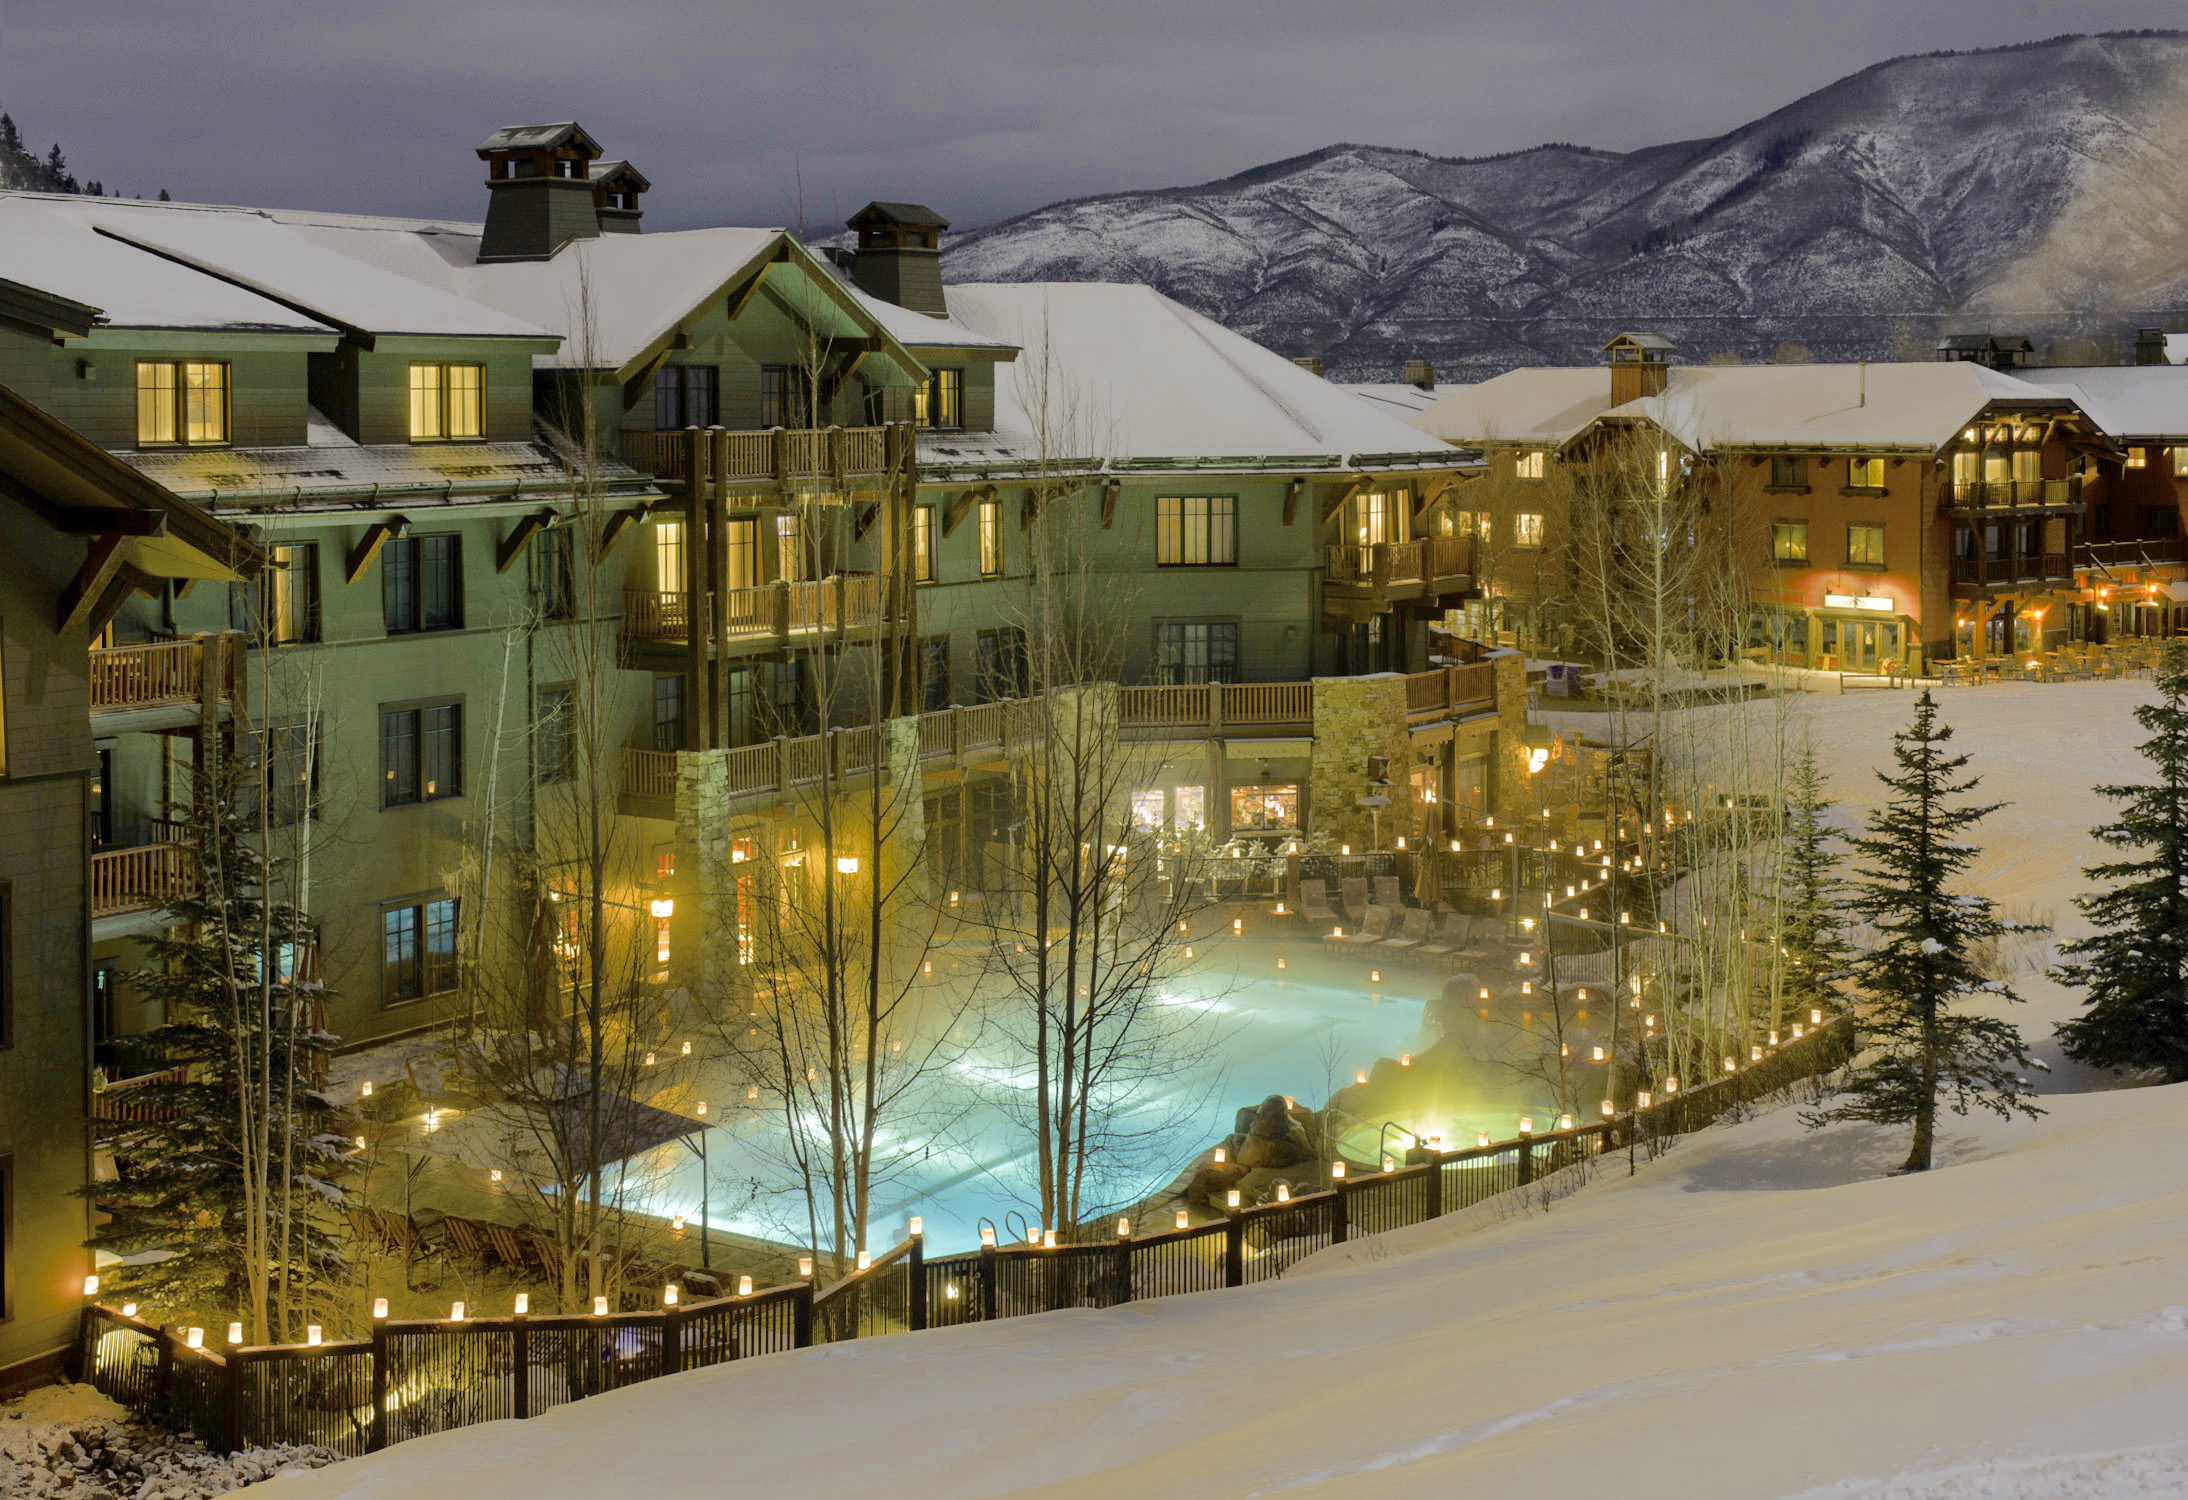 Fractional Ownership for Sale at Ritz-Carlton Club Condo Fractional Interest, 8403, Winter Interest 4 0075 Prospector Road, 8403, Winter Interest 4 Aspen, Colorado, 81611 United States